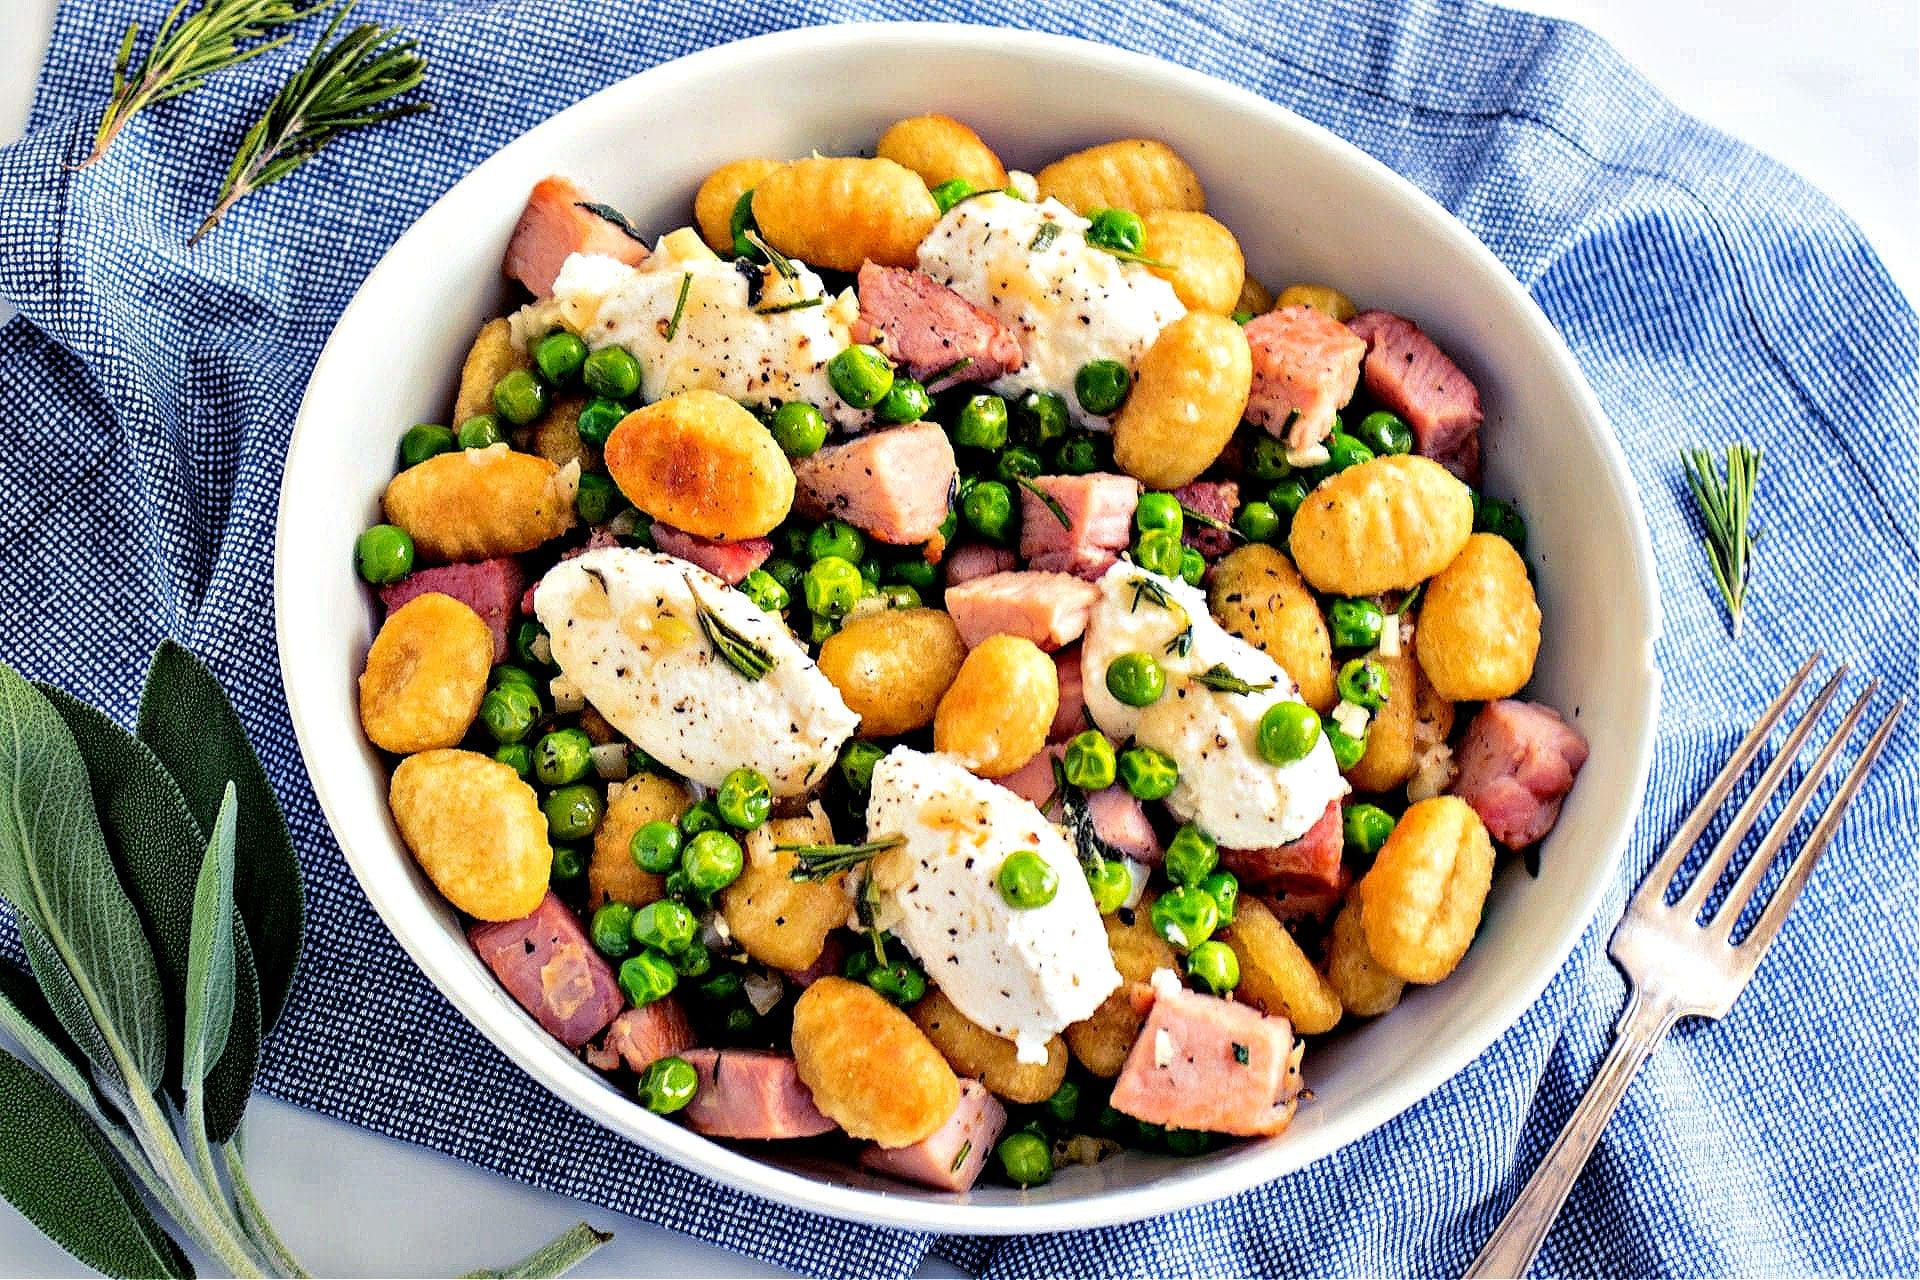 Crispy Gnocchi with Peas, Ham and Ricotta